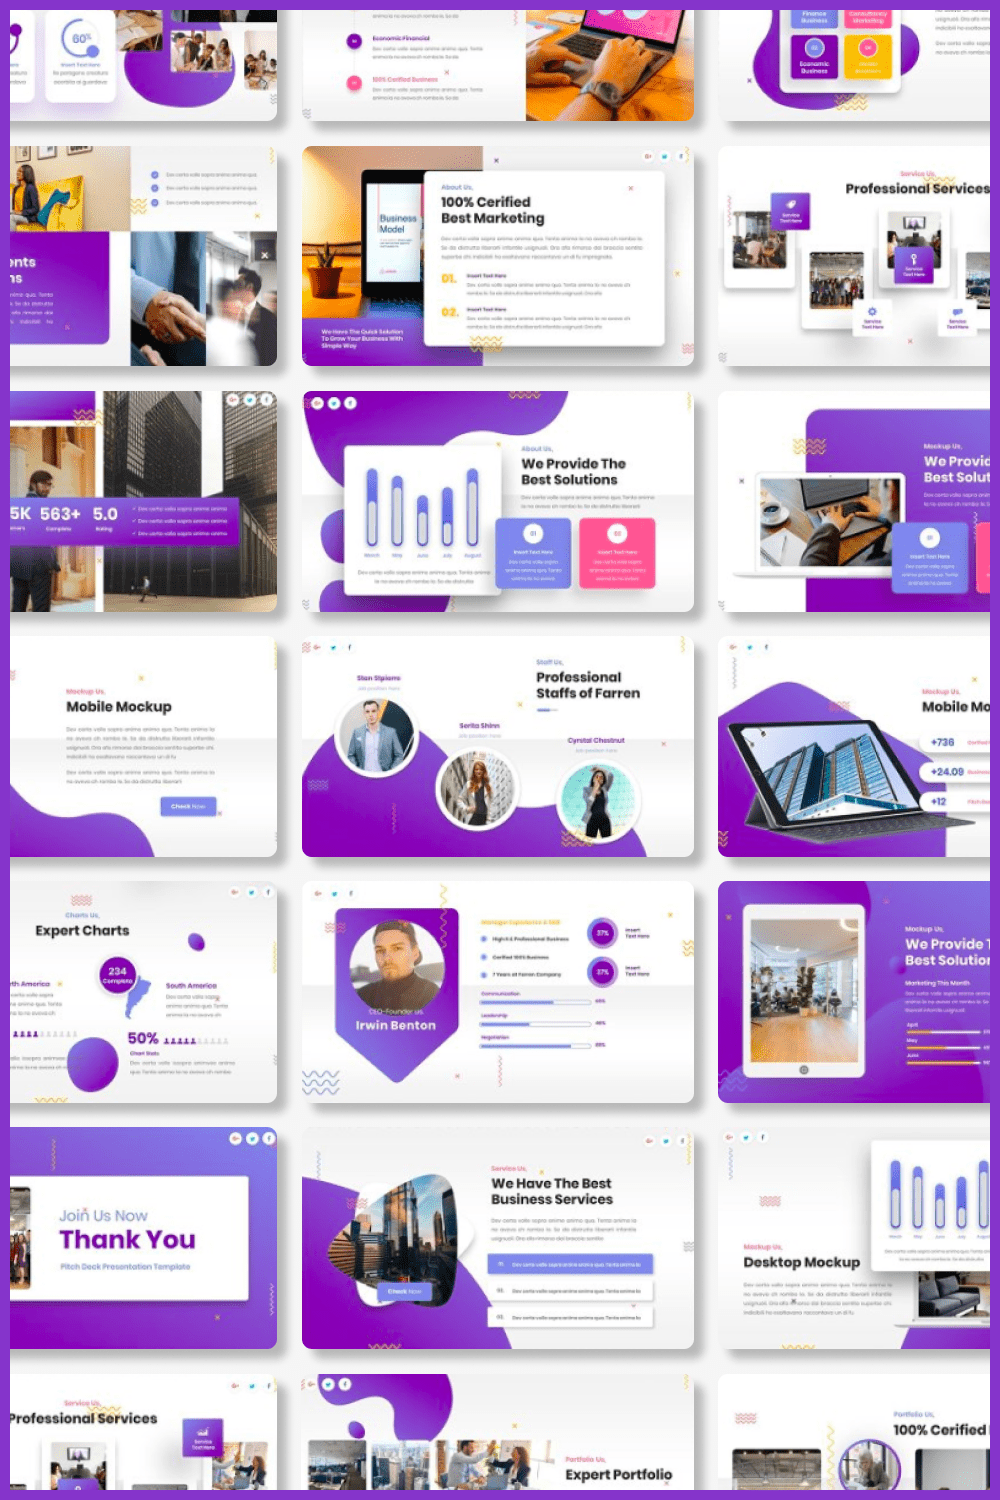 It's a big and vivid template for a real business.